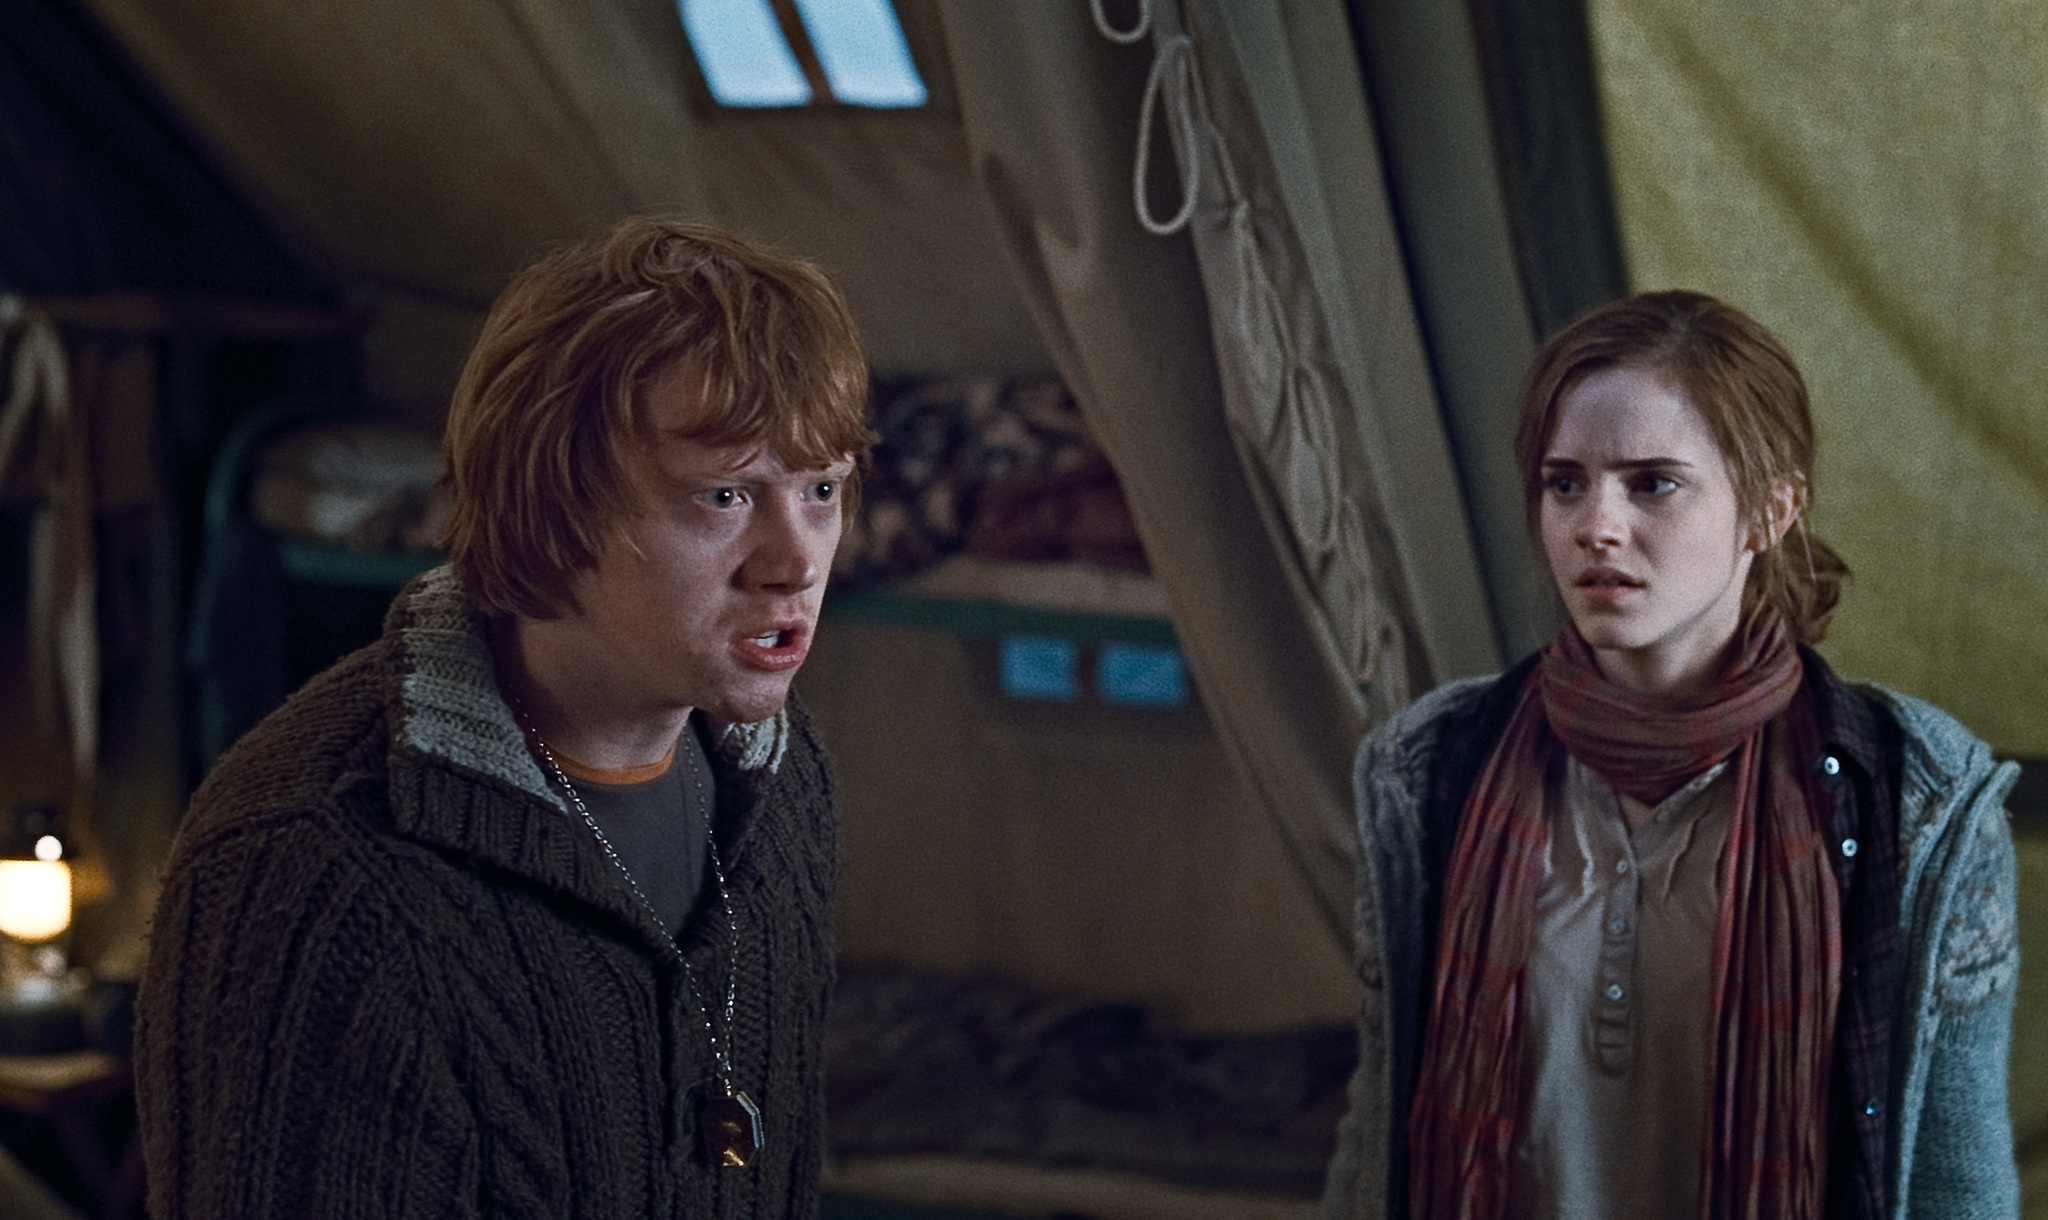 harry_potter_and_the_deathly_hallows_movie_image_rupert_grint_emma_watson_01